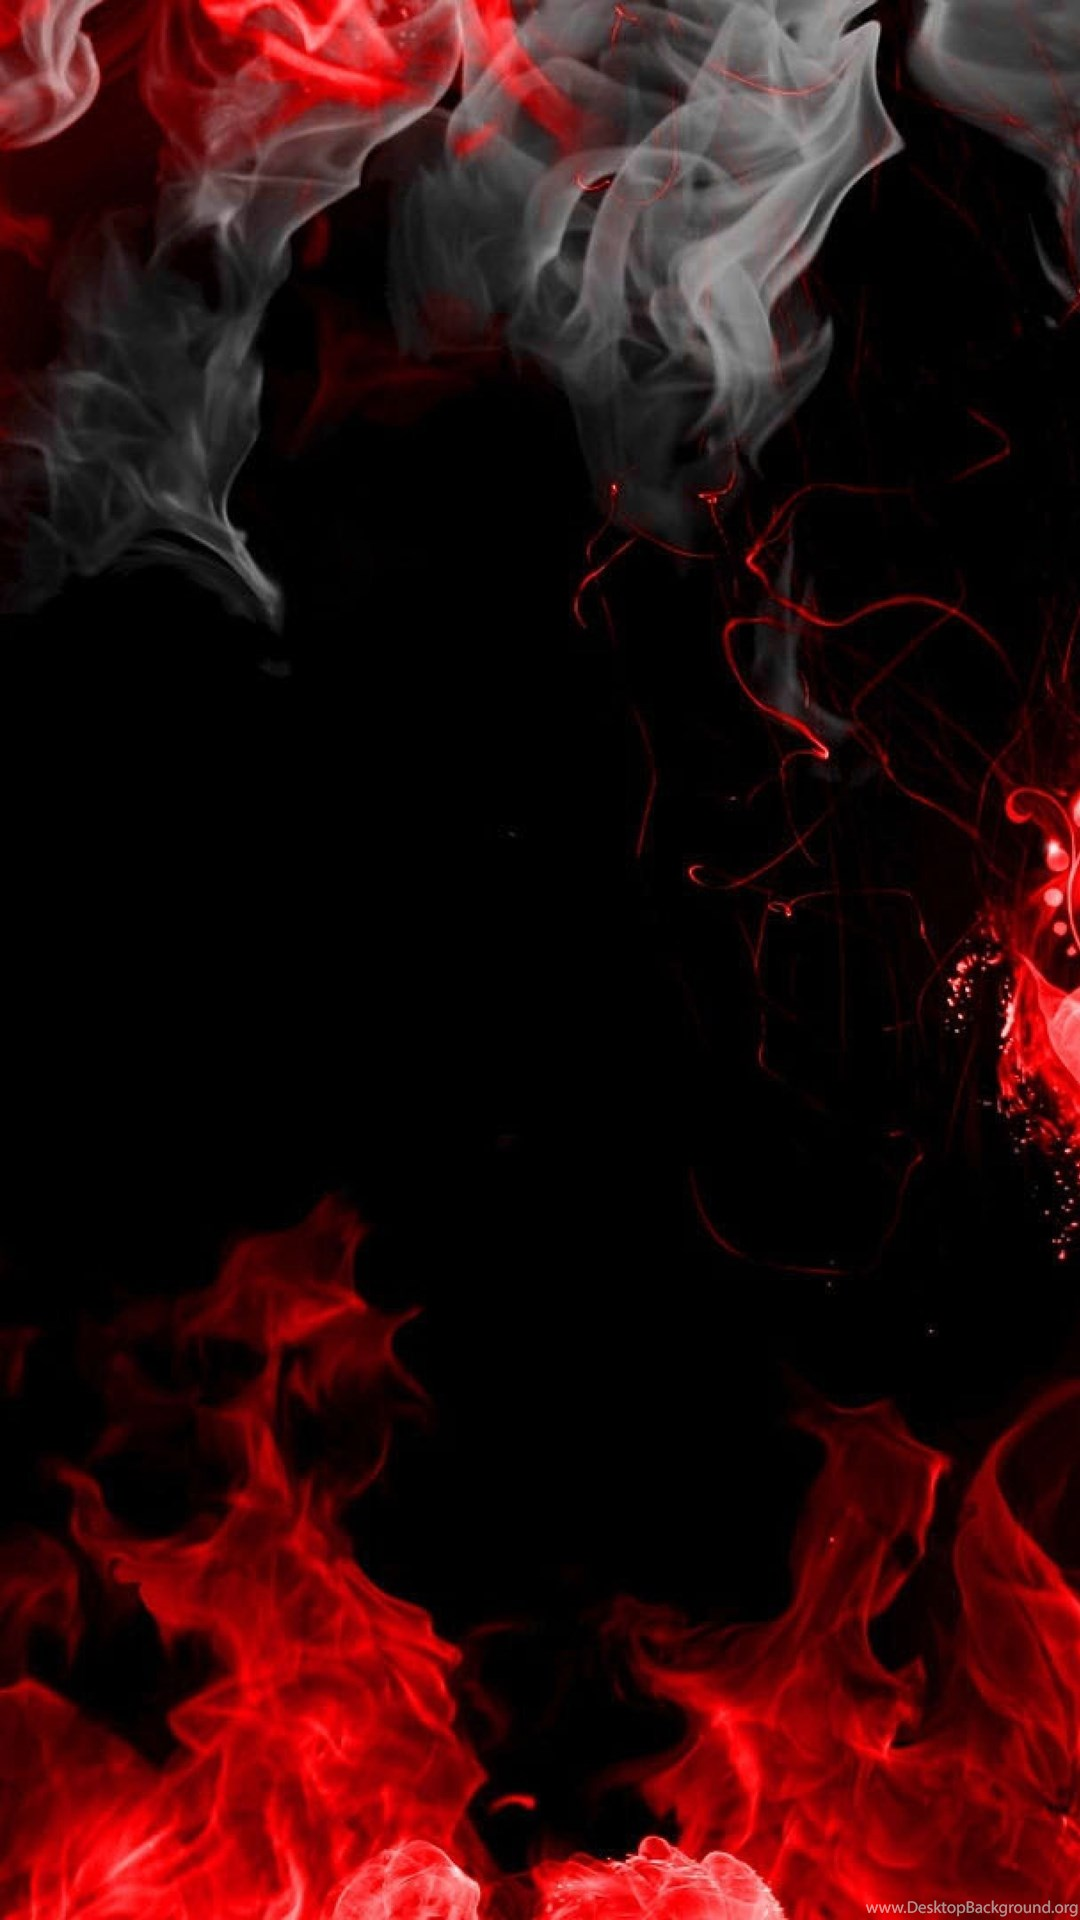 Download Wallpapers 3840x2160 Abstraction, Red, Smoke ...